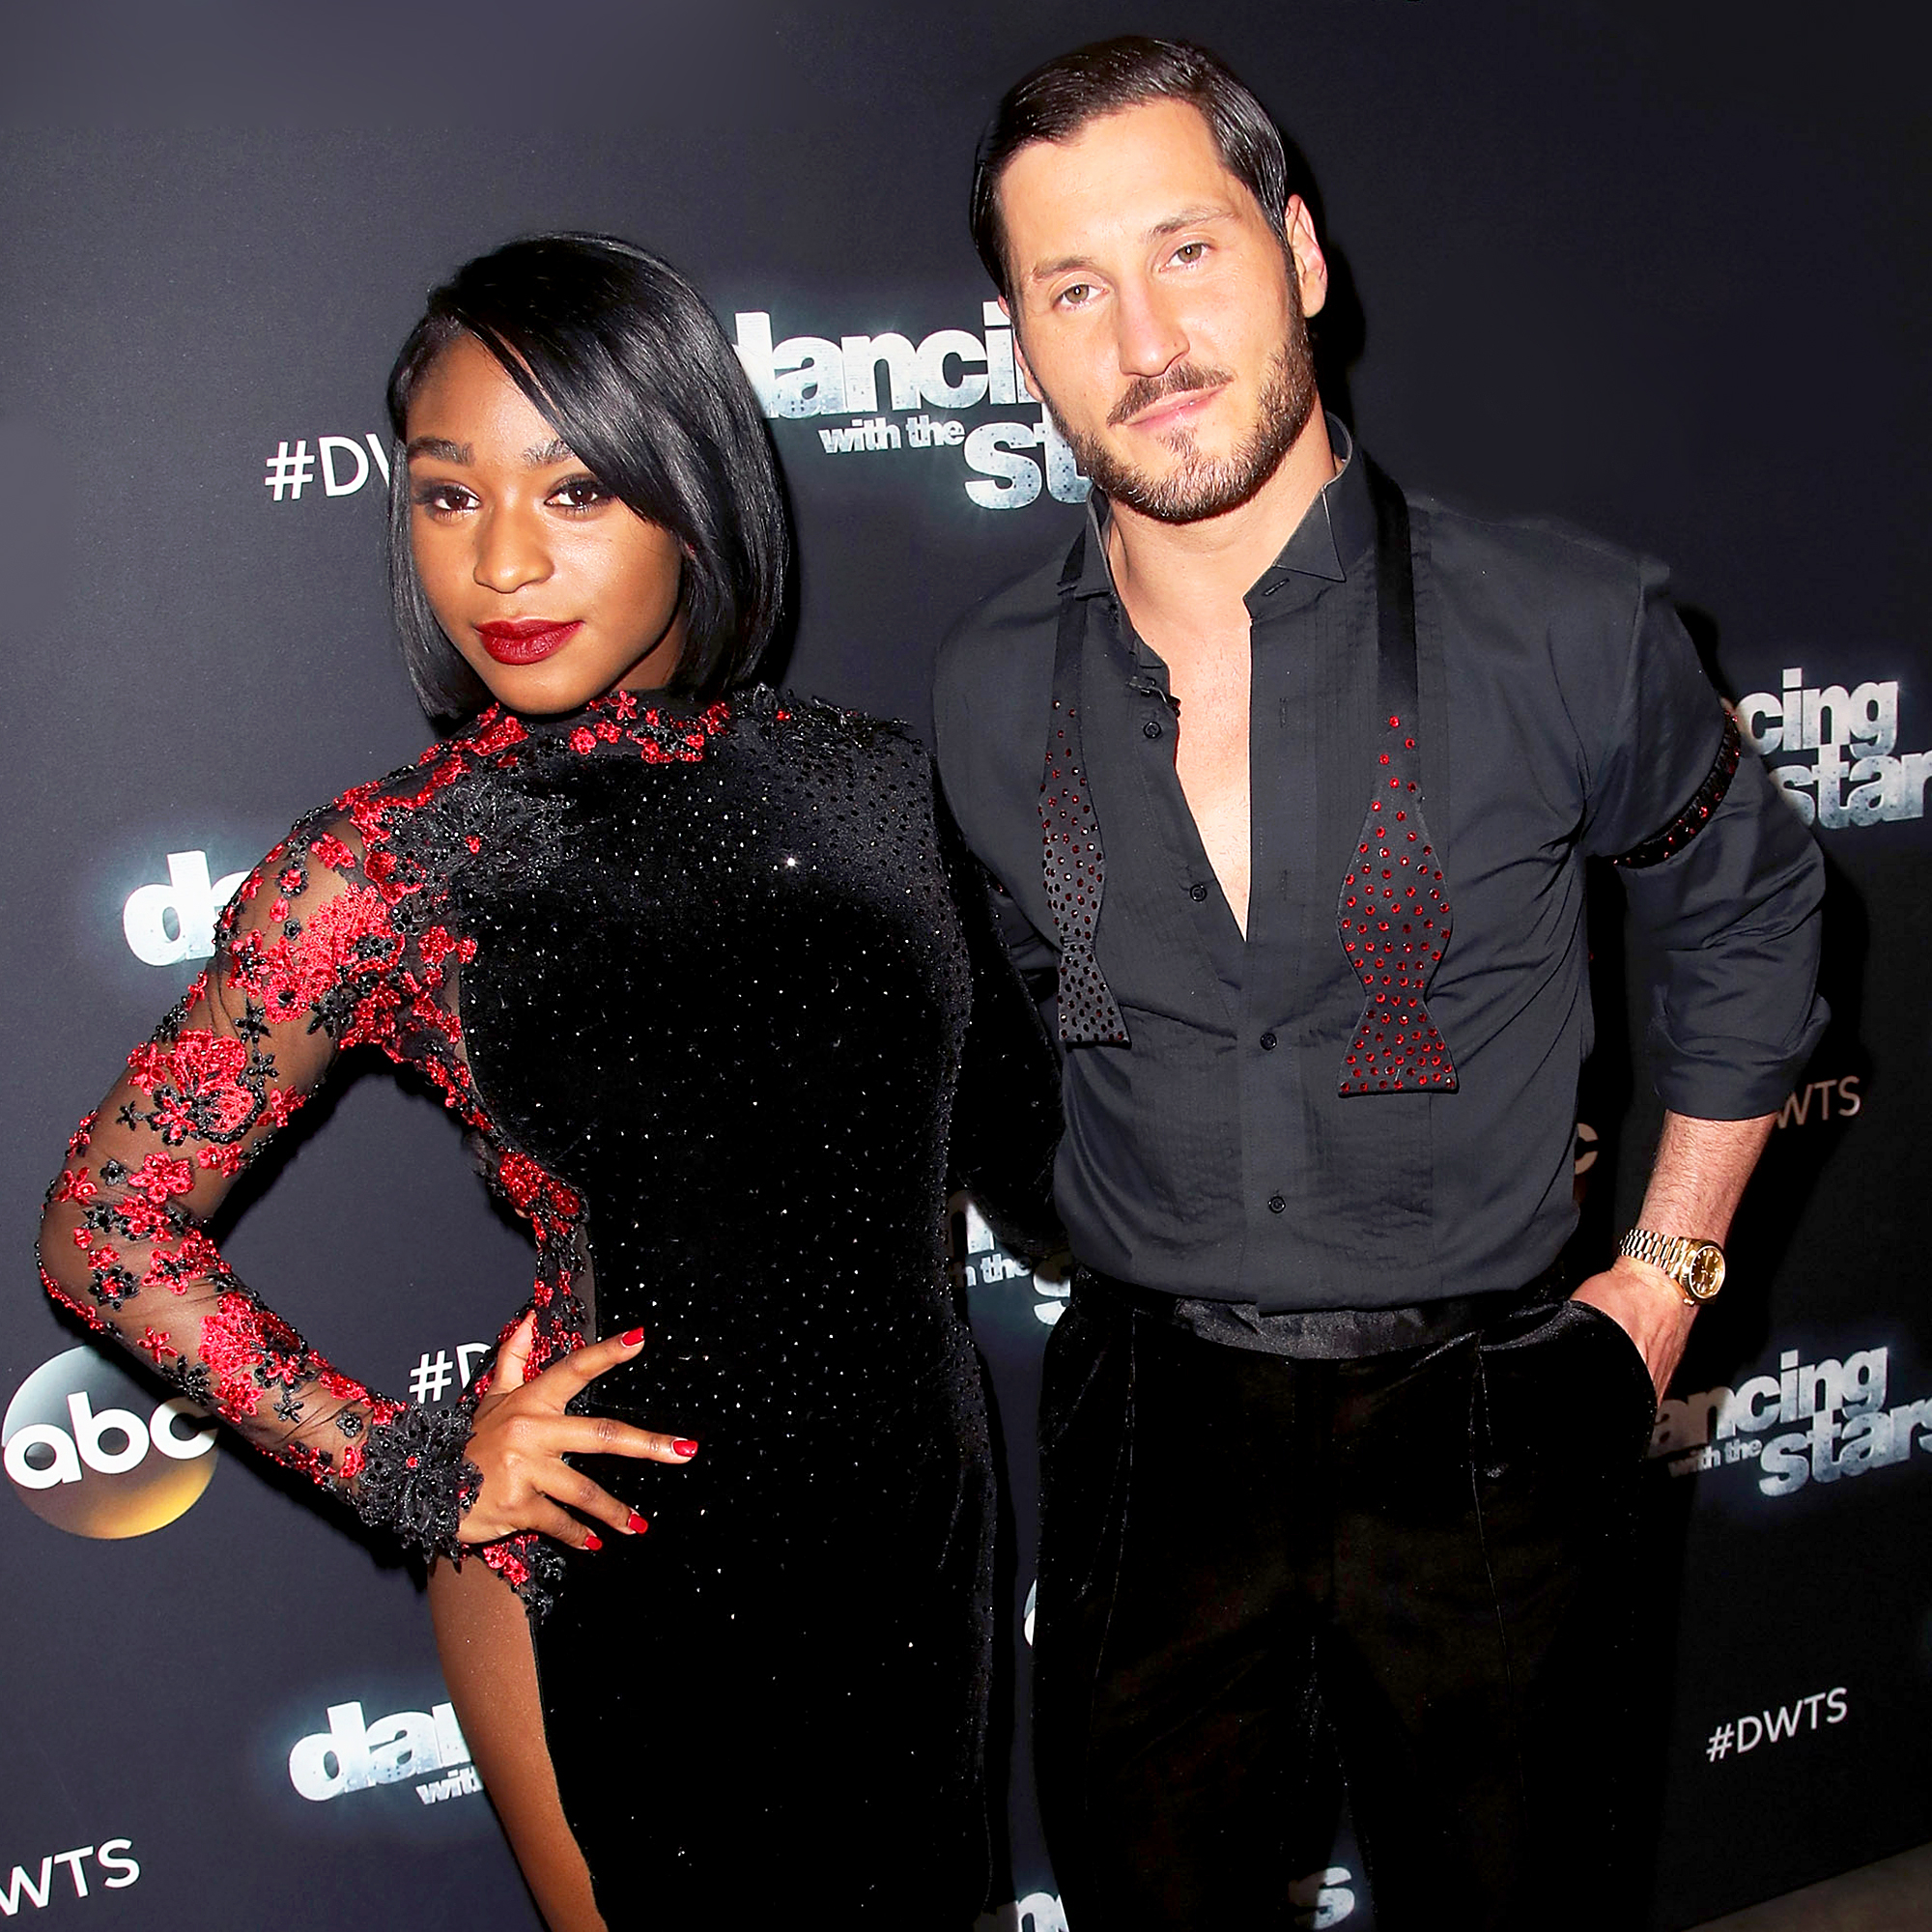 Normani Kordei and Val Chmerkovskiy